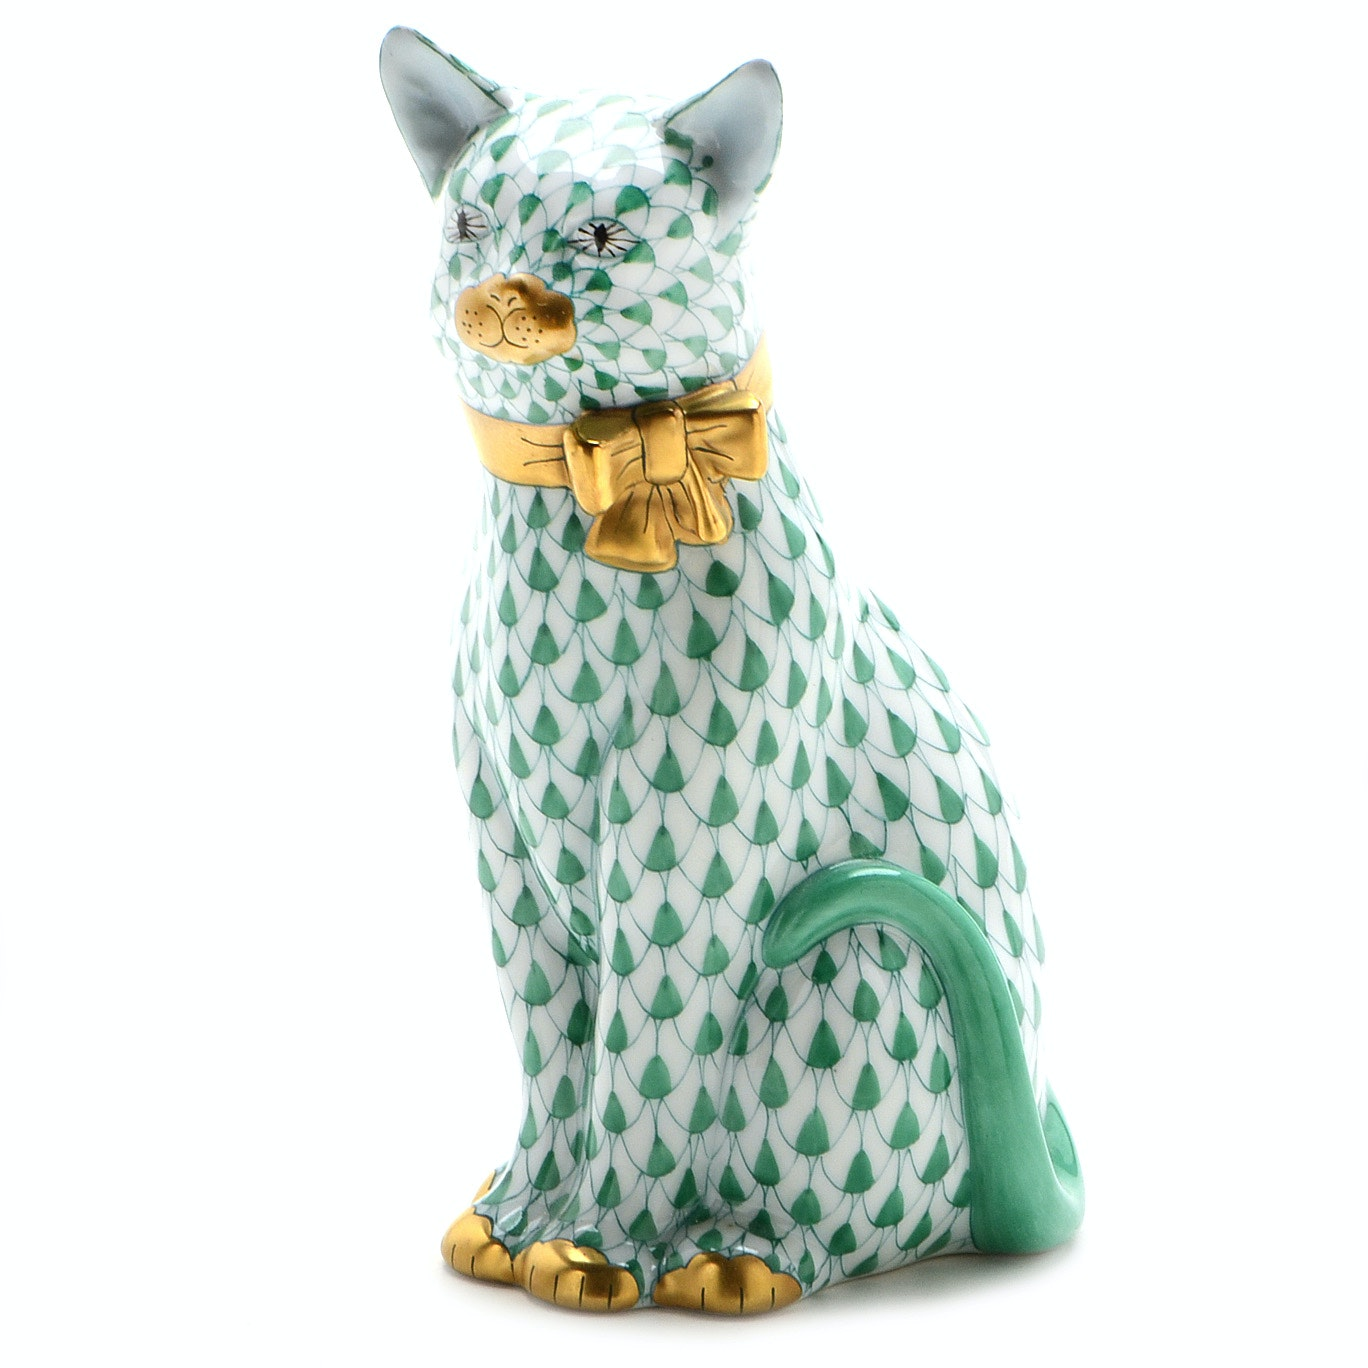 Herend of Hungary Porcelain Sitting Cat